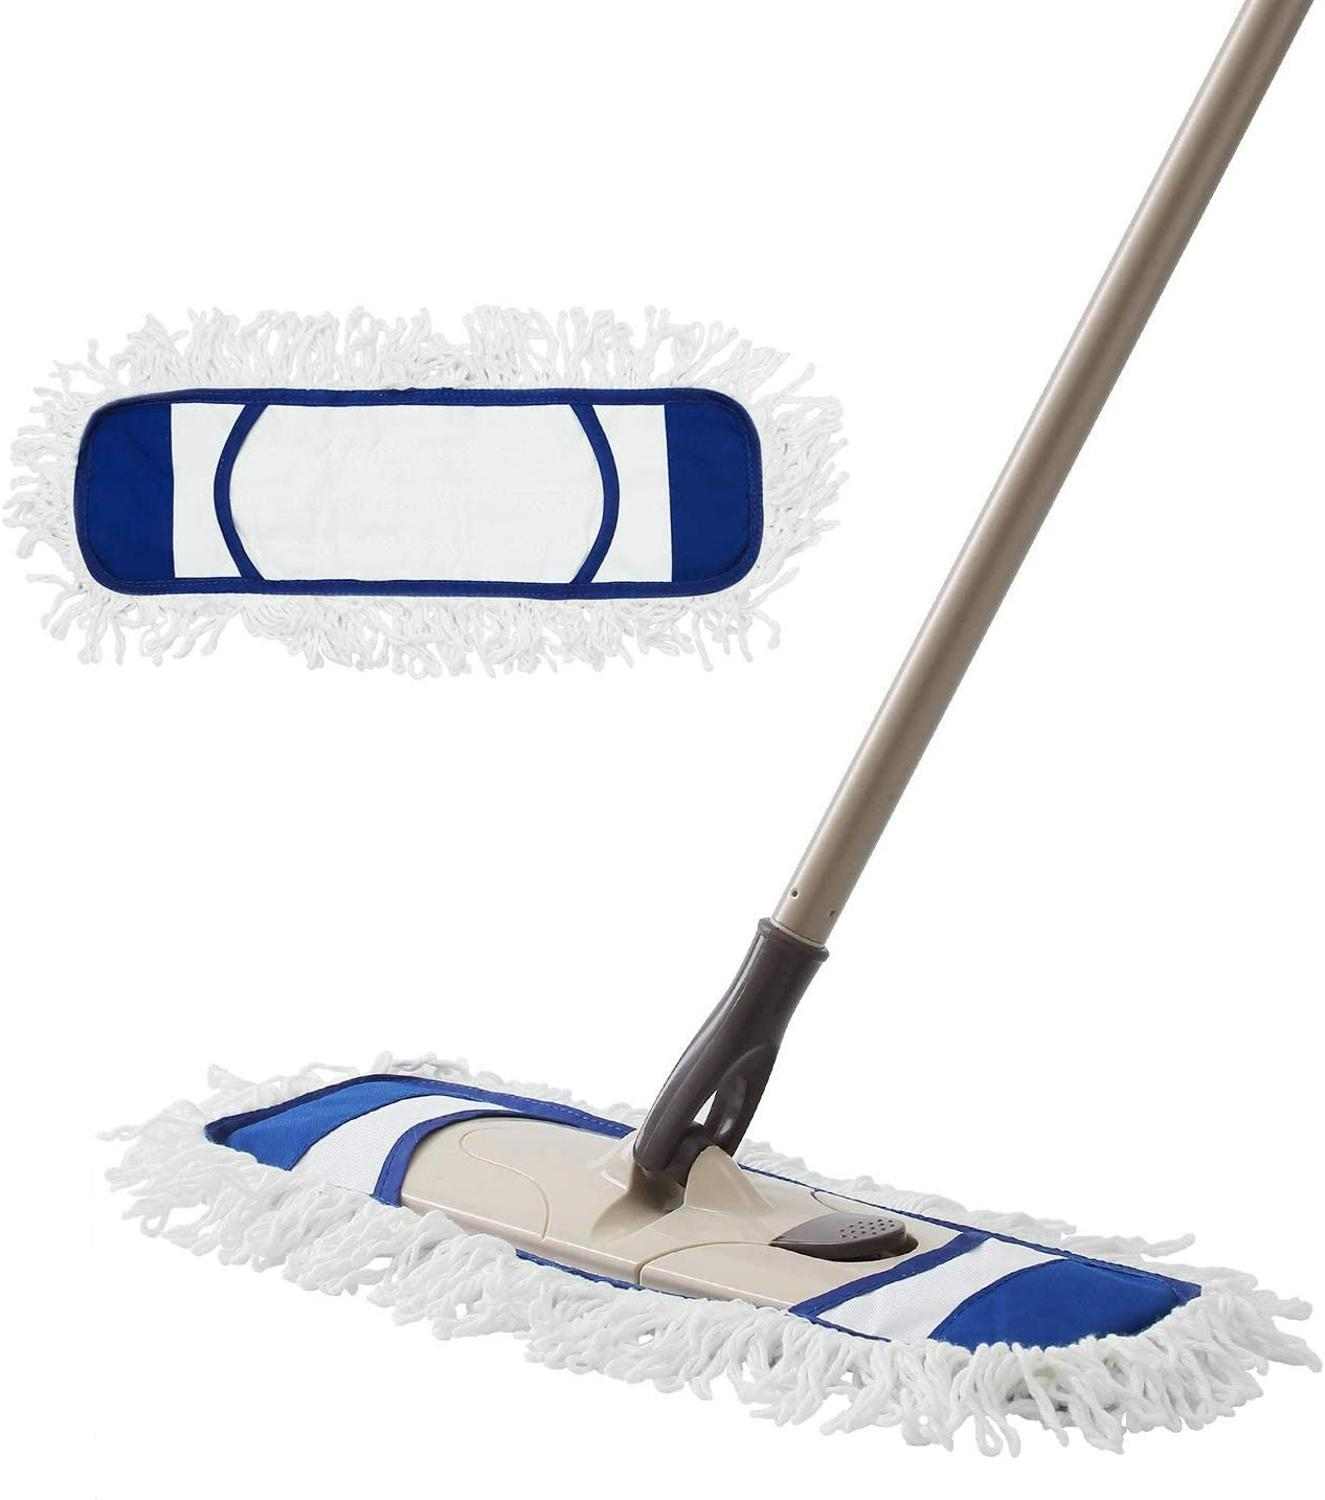 Cleanhome Microfiber Mop With Extendable Adjustable Handle And 2 Washable Pads For Wet & Dry Floor Cleaning